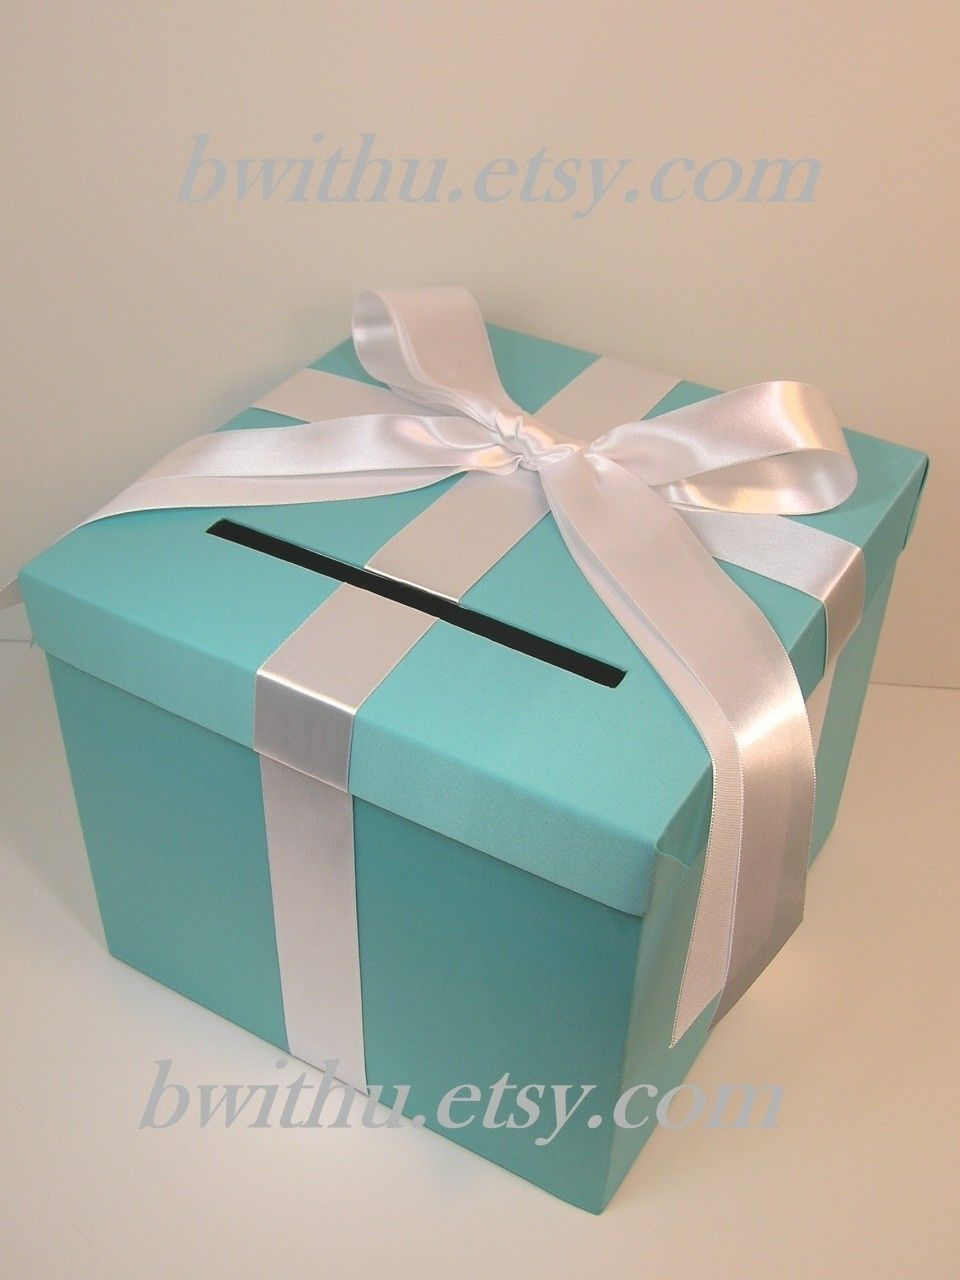 Wedding Gift Boxes Pinterest : ... about high school grad card boxes on pinterest wedding and gift boxes